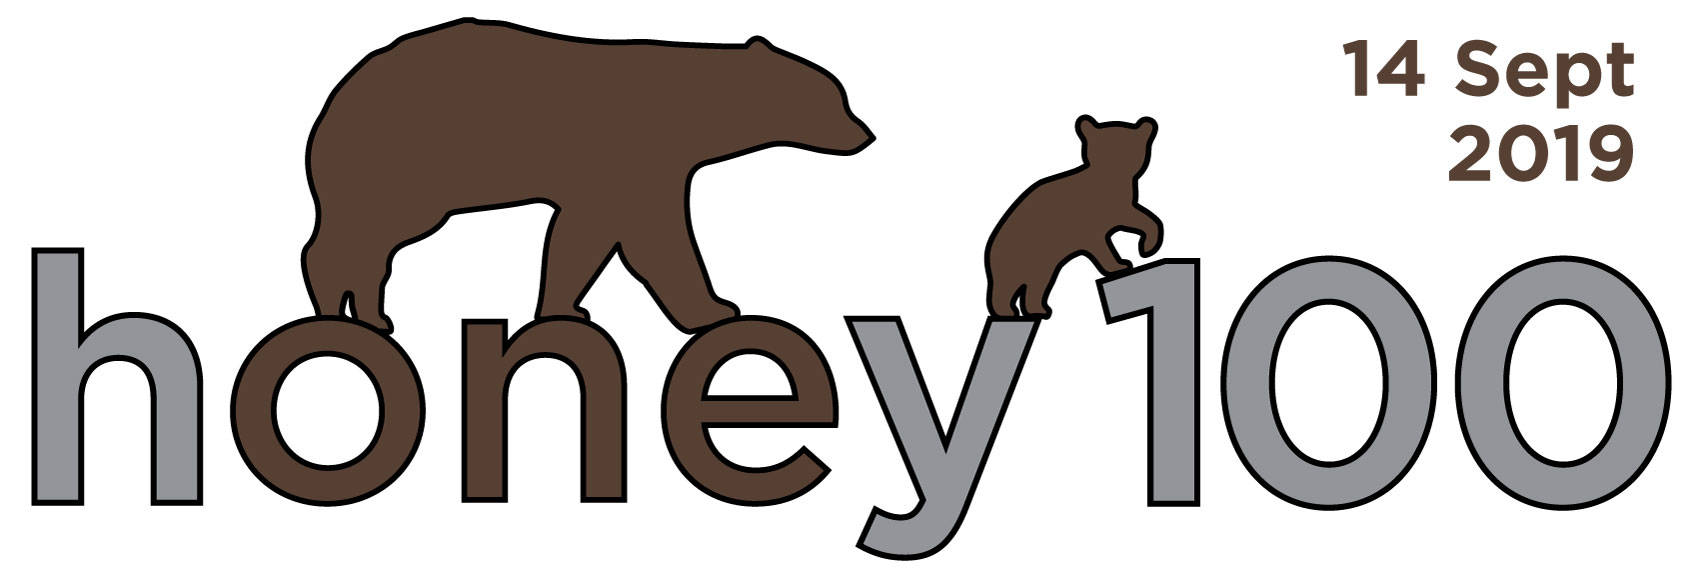 Honey-100-logo-horizontal-190603(1).jpg